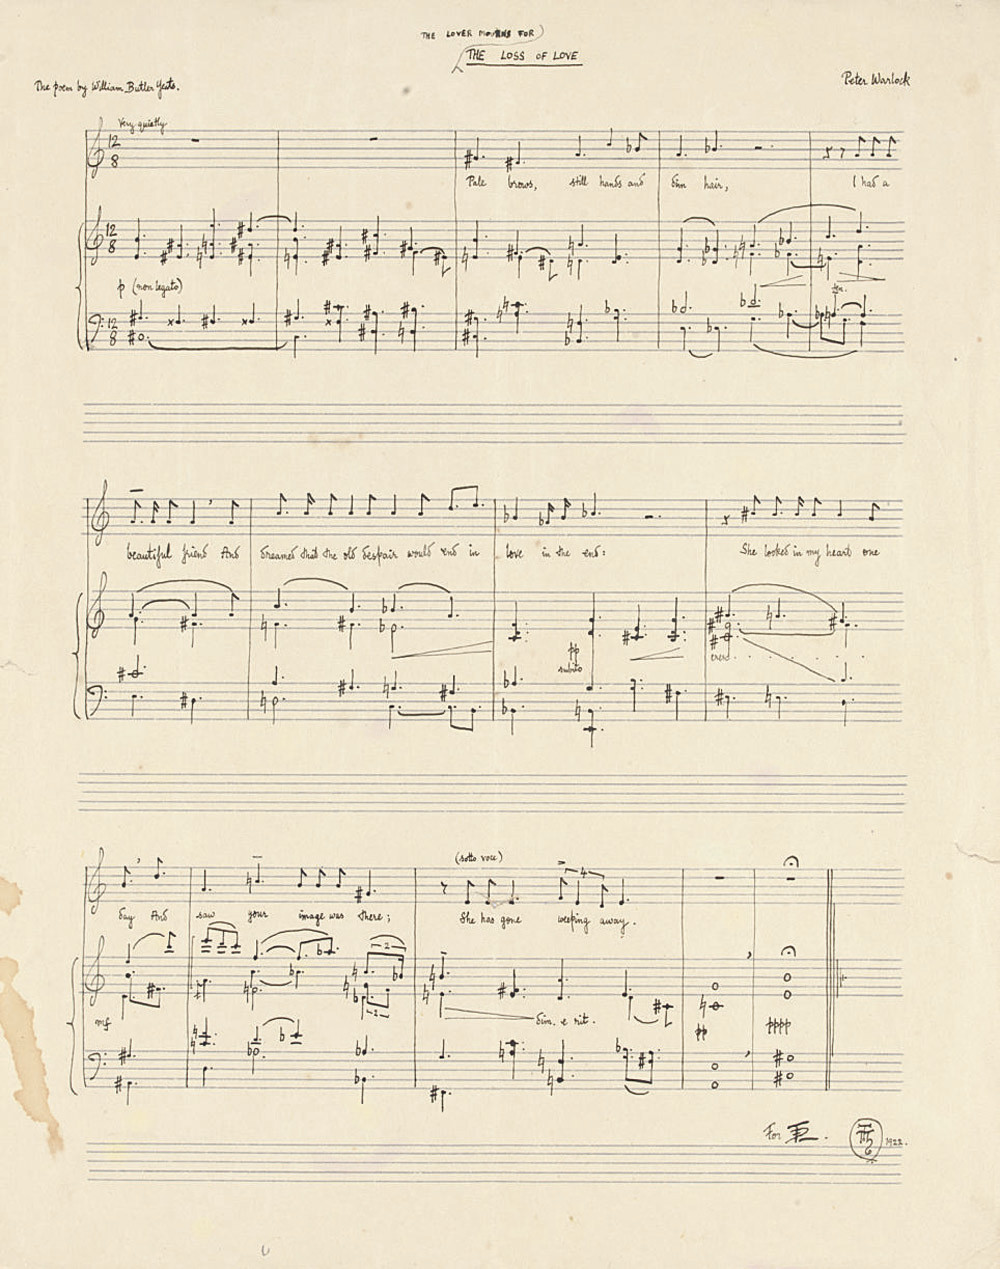 """WARLOCK, Peter [i.e. Philip Heseltine (1894-1930)]. Autograph music manuscript signed (with monogram) of two songs, 'The Cloths of Heaven' [composed 1916 and revised 1919] and 'The Loss of Love' (altered to 'The Lover mourns for the Loss of Love') [composed 1916 and revised 1920], n.d. [1922], both texts by W.B. Yeats, scored for voice and piano, in ink on three systems of three staves, inscribed 'For I.H.' [his cousin, Irene """"Freddie"""" Heseltine], 2 leaves, small folio (310 x 247mm), on a bifolium; [with] an autograph letter signed (with monogram) to [Freddie Heseltine], Cefyn-Bryntalch, 3 December 1922, 'I'm tremendously pleased you liked The Curlew though the poor bird was nearly done to death by Mr Wilson. I was not so sanguine as to expect an interpretation from him but I did expect (a) the right notes (b) entries to be made at the right place ... and (c) rational demeanour on the platform', looking forward to a more sympathetic performance by the baritone John Goss, and apologising elyptically for 'my somewhat eccentric behaviour' in a Limehouse pub, 3 pages, 4to, bifolium; [and] 8 related printed items. Provenance: from the composer to his cousin, Irene (""""Freddie"""") Heseltine; by descent to the present owner.  EARLY VERSIONS OF SONGS FROM THE CURLEW. Both songs, with the accompaniments orchestrated, were initially included in The Curlew (Warlock's setting of five Yeats poems for tenor voice, flute, horn and string quartet), though 'The Cloths of Heaven' was later discarded and remained unpublished until the 1982 collected edition. (3)"""